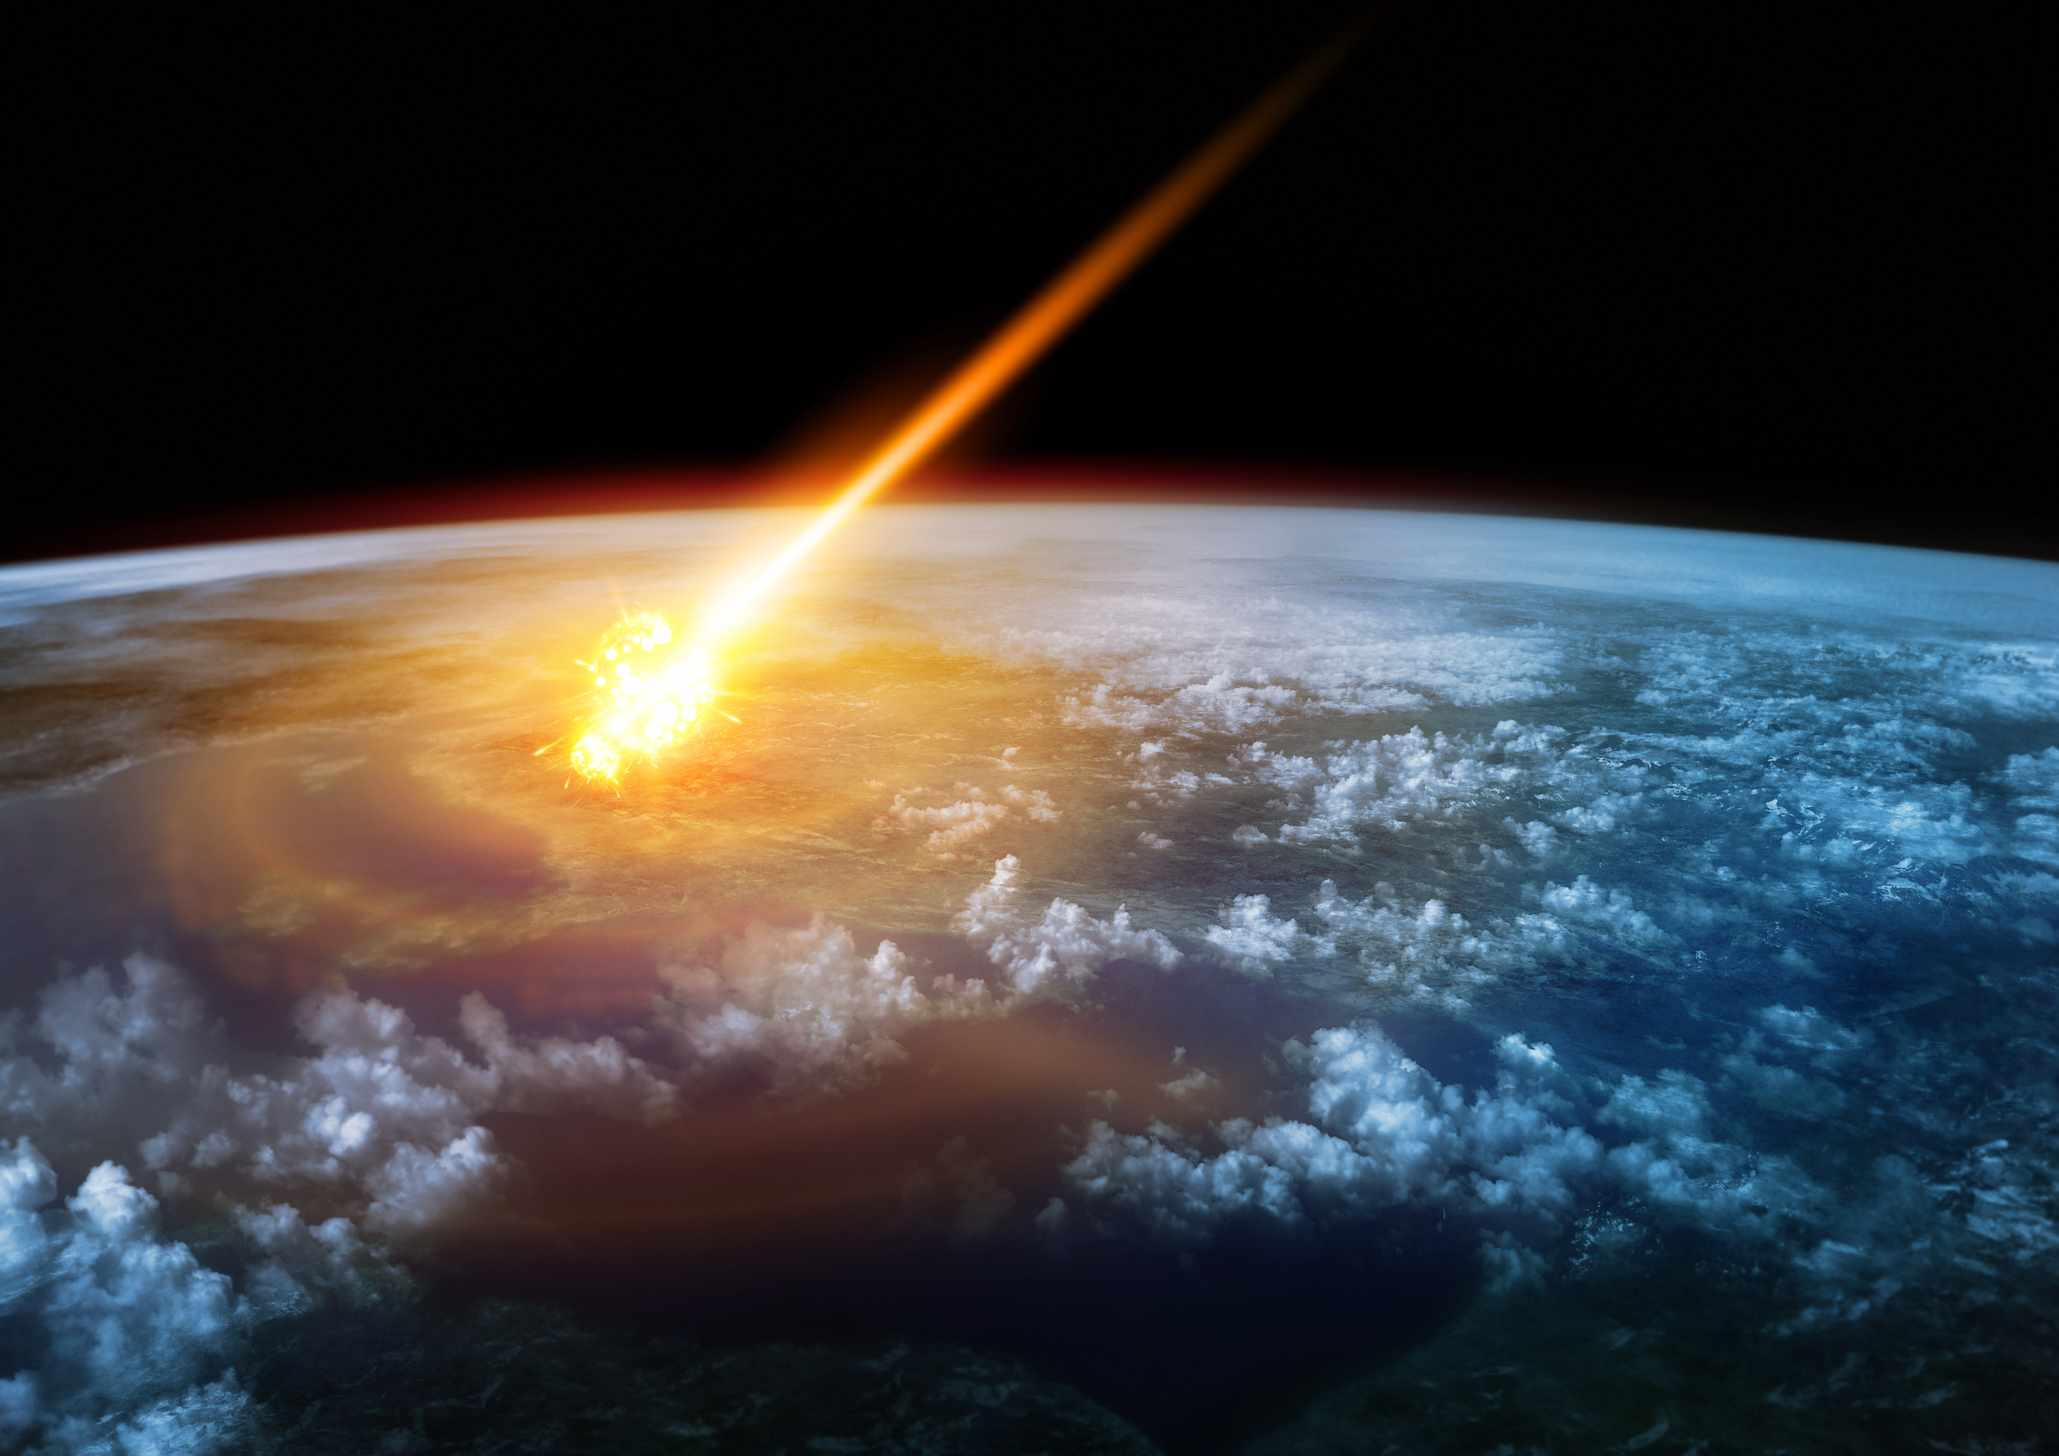 How many potentially hazardous asteroids are there? © Getty Images